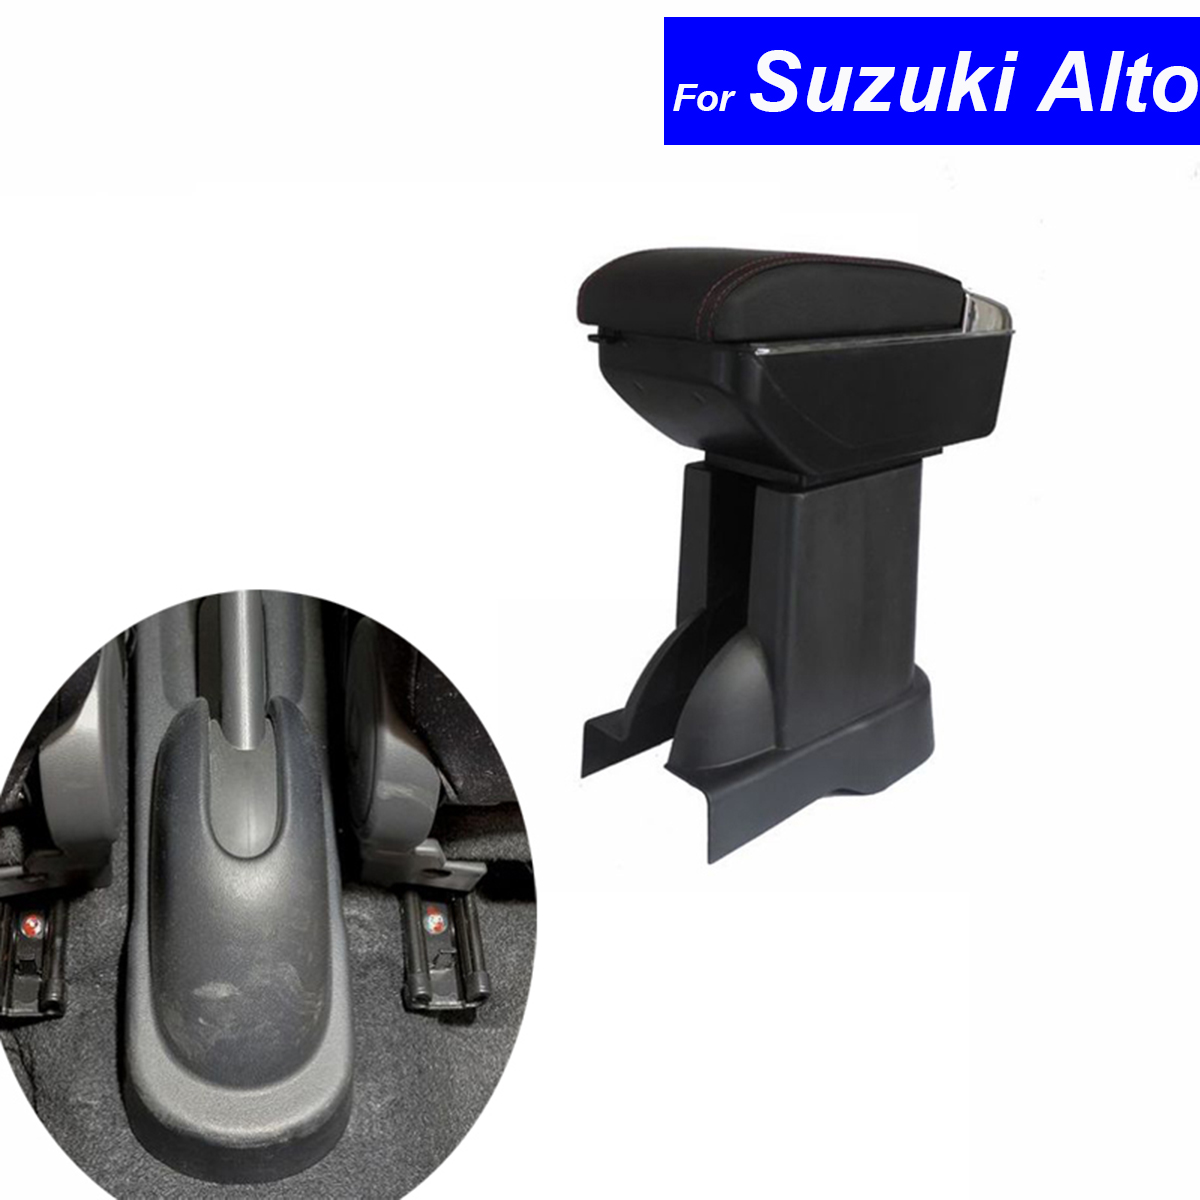 online buy wholesale suzuki alto parts from china suzuki alto